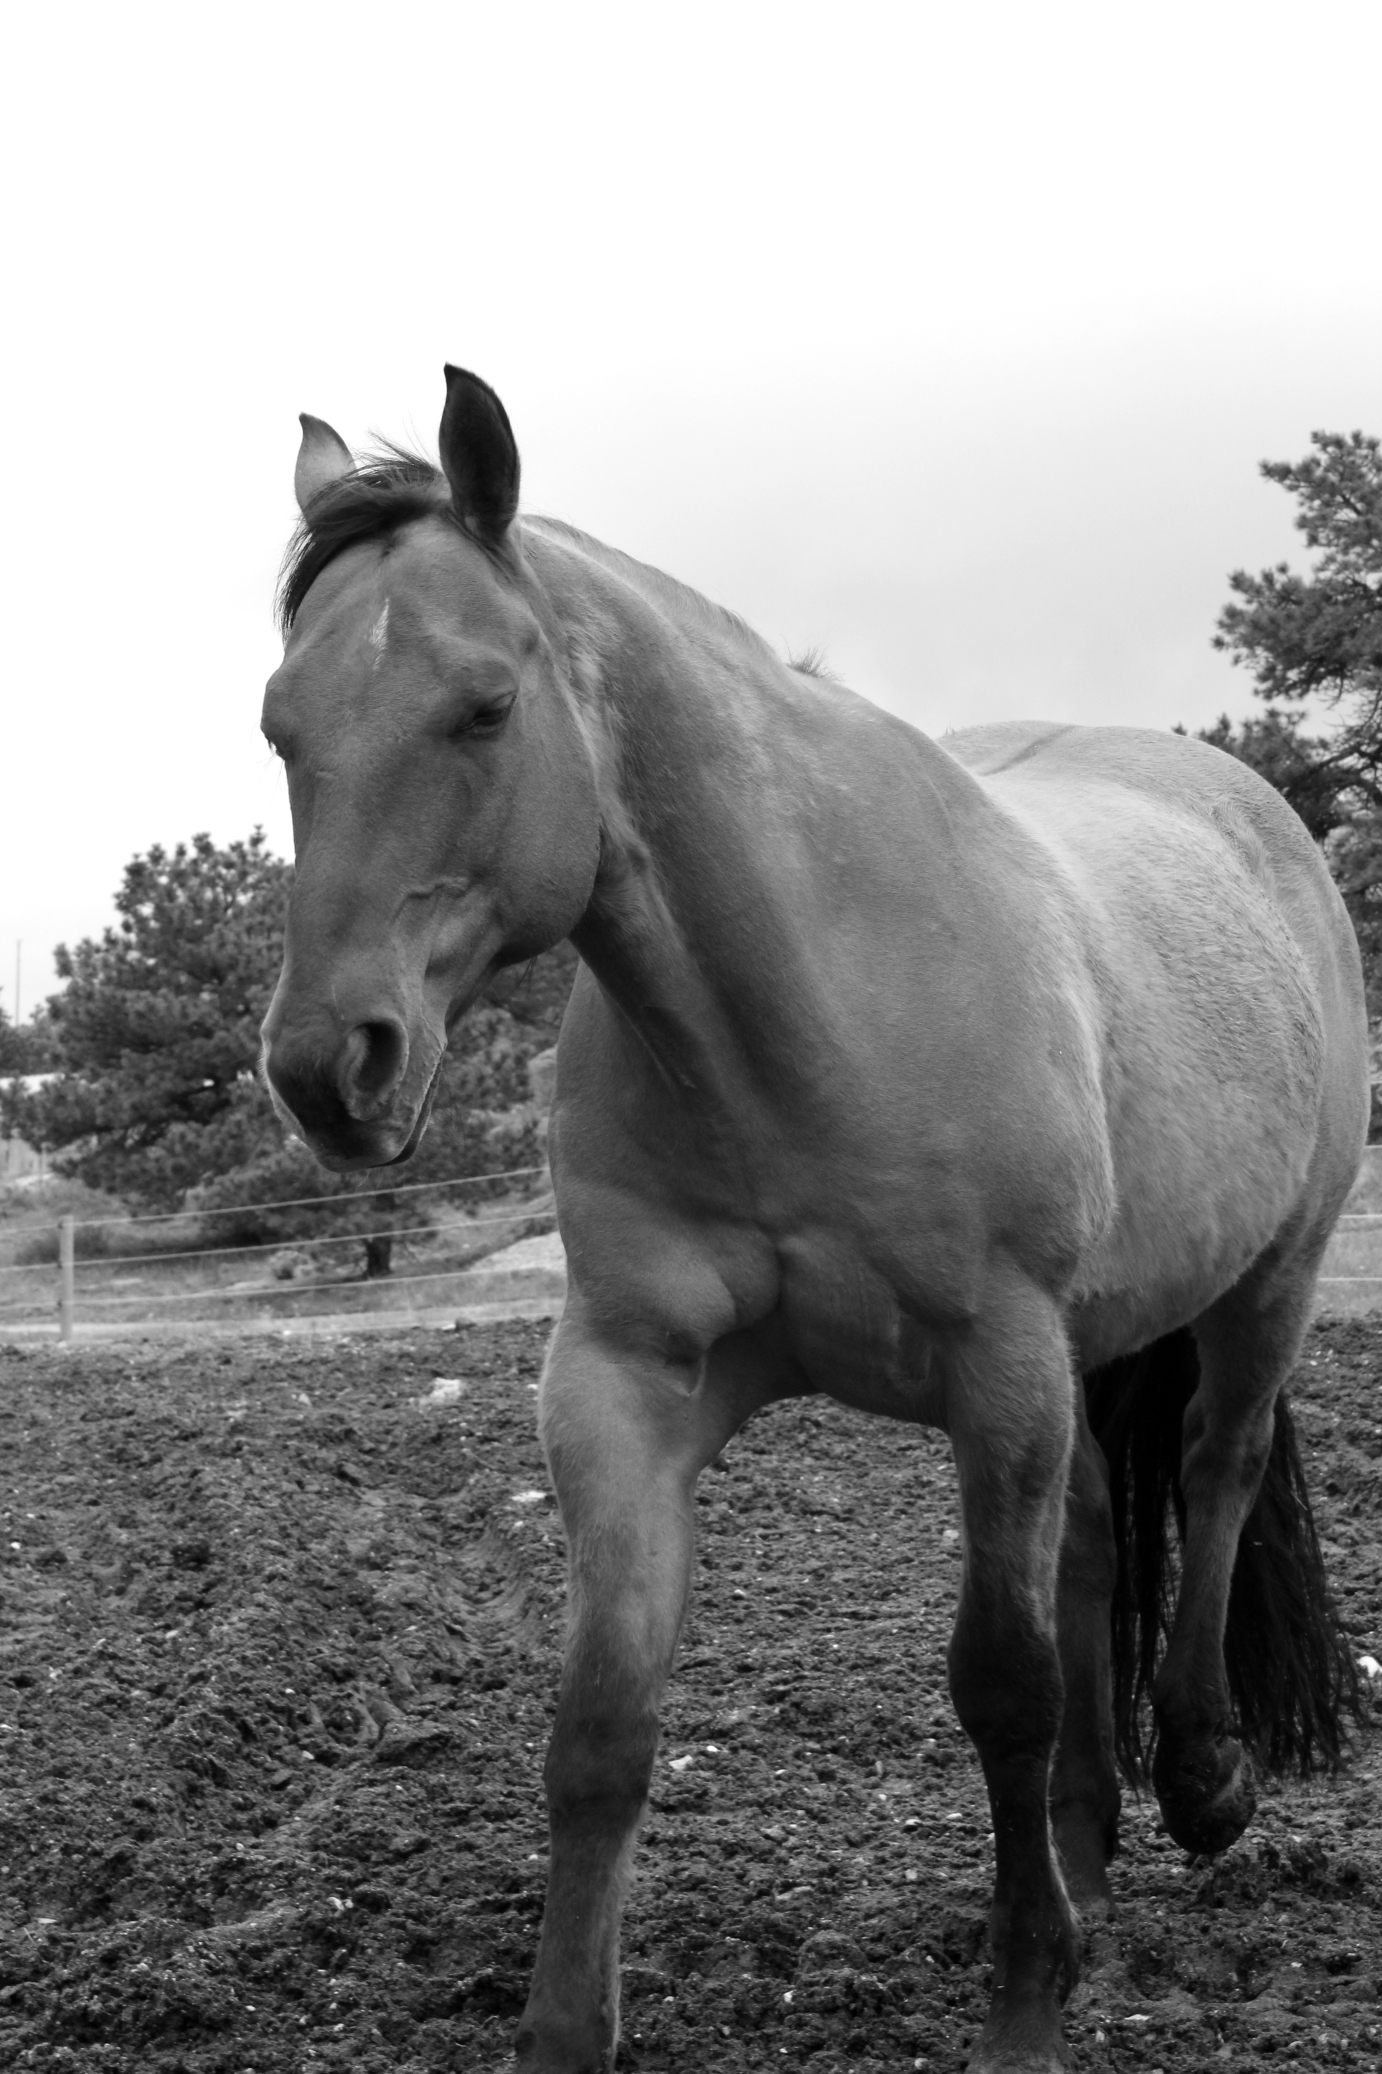 The horse Monty.